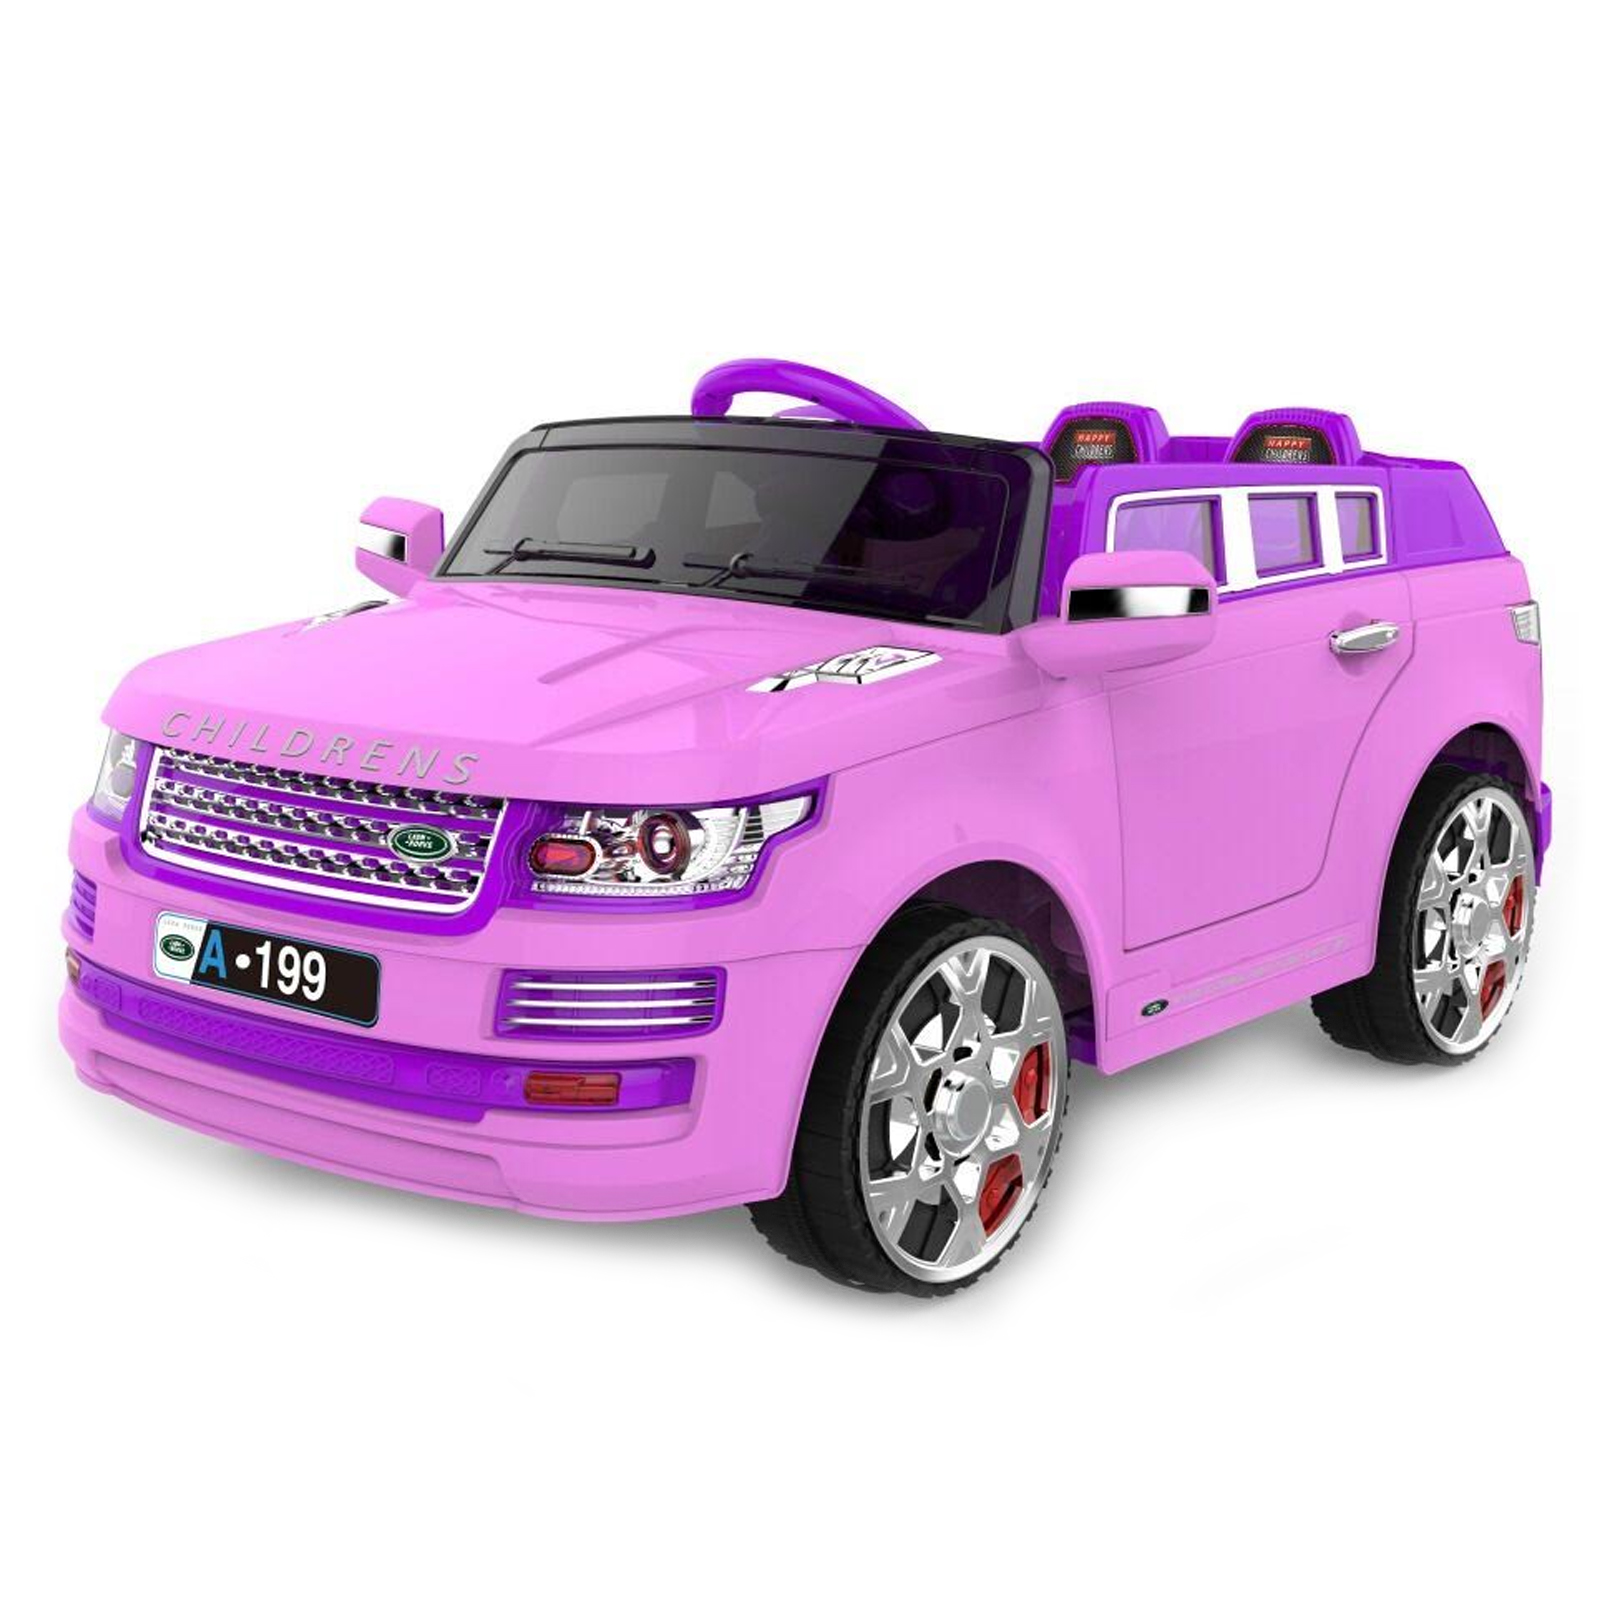 Battery Car for Kids Luxury Luxury Suv 12v Kids Ride On toy Car Battery Powered Wheels